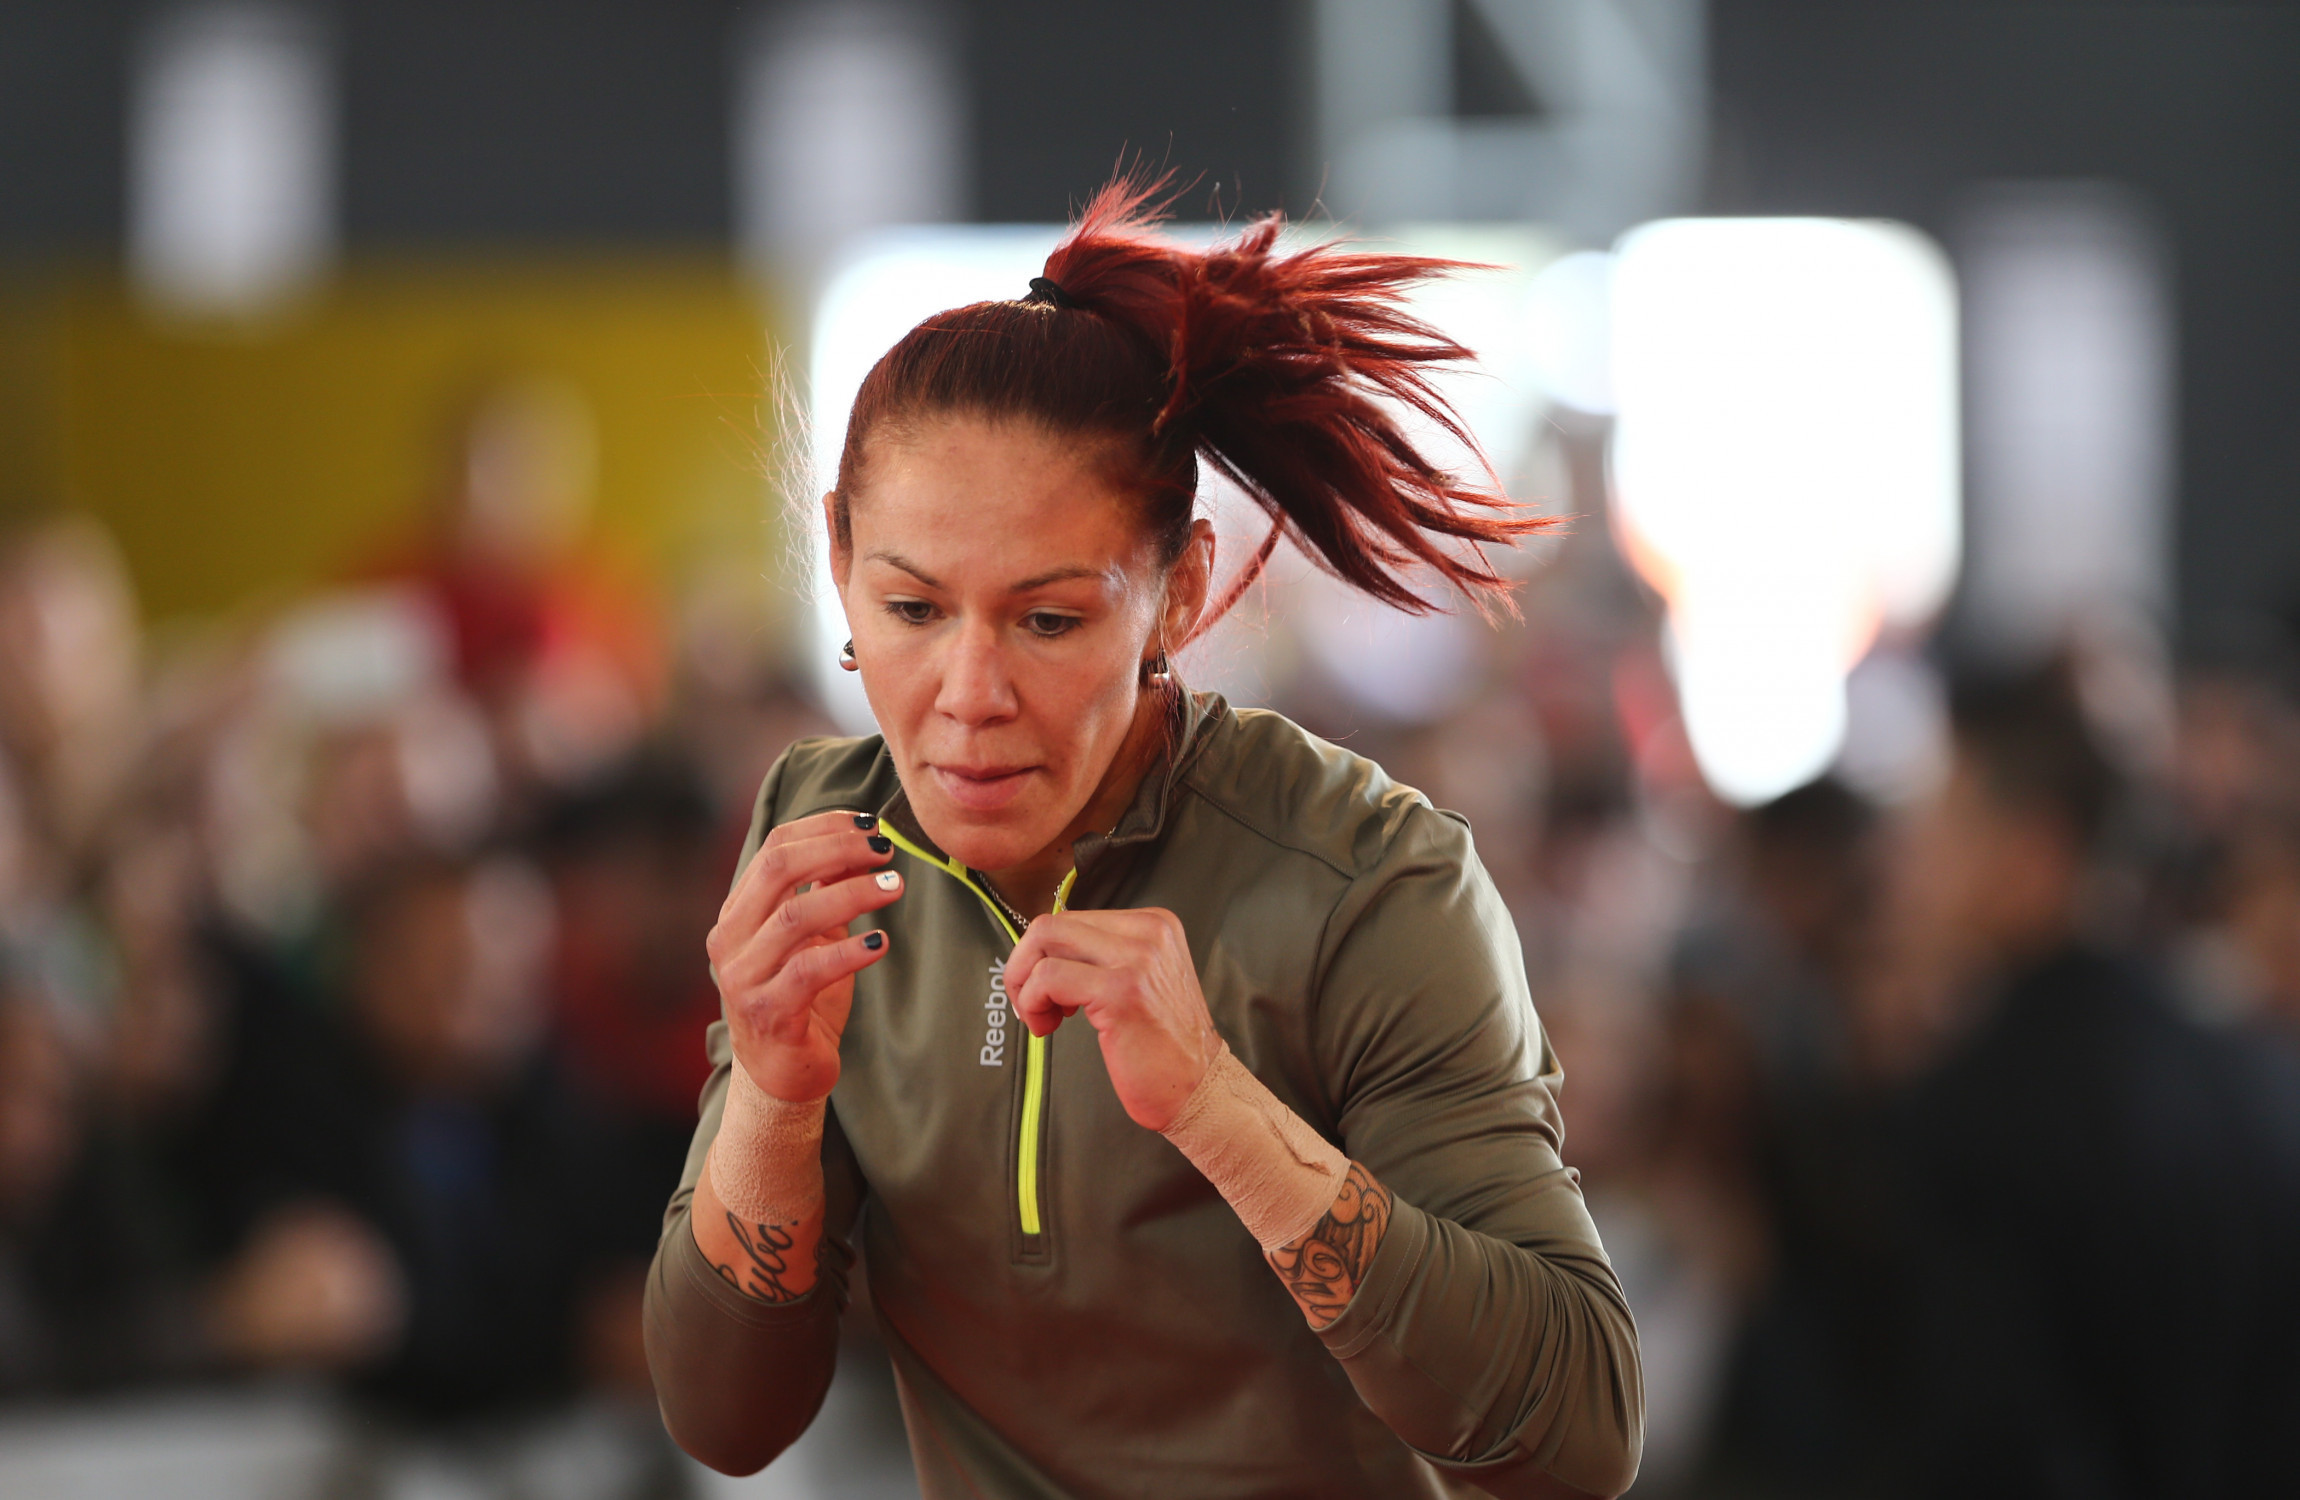 Cris Cyborg granted boxing license, eyeing Jr. Middleweight career